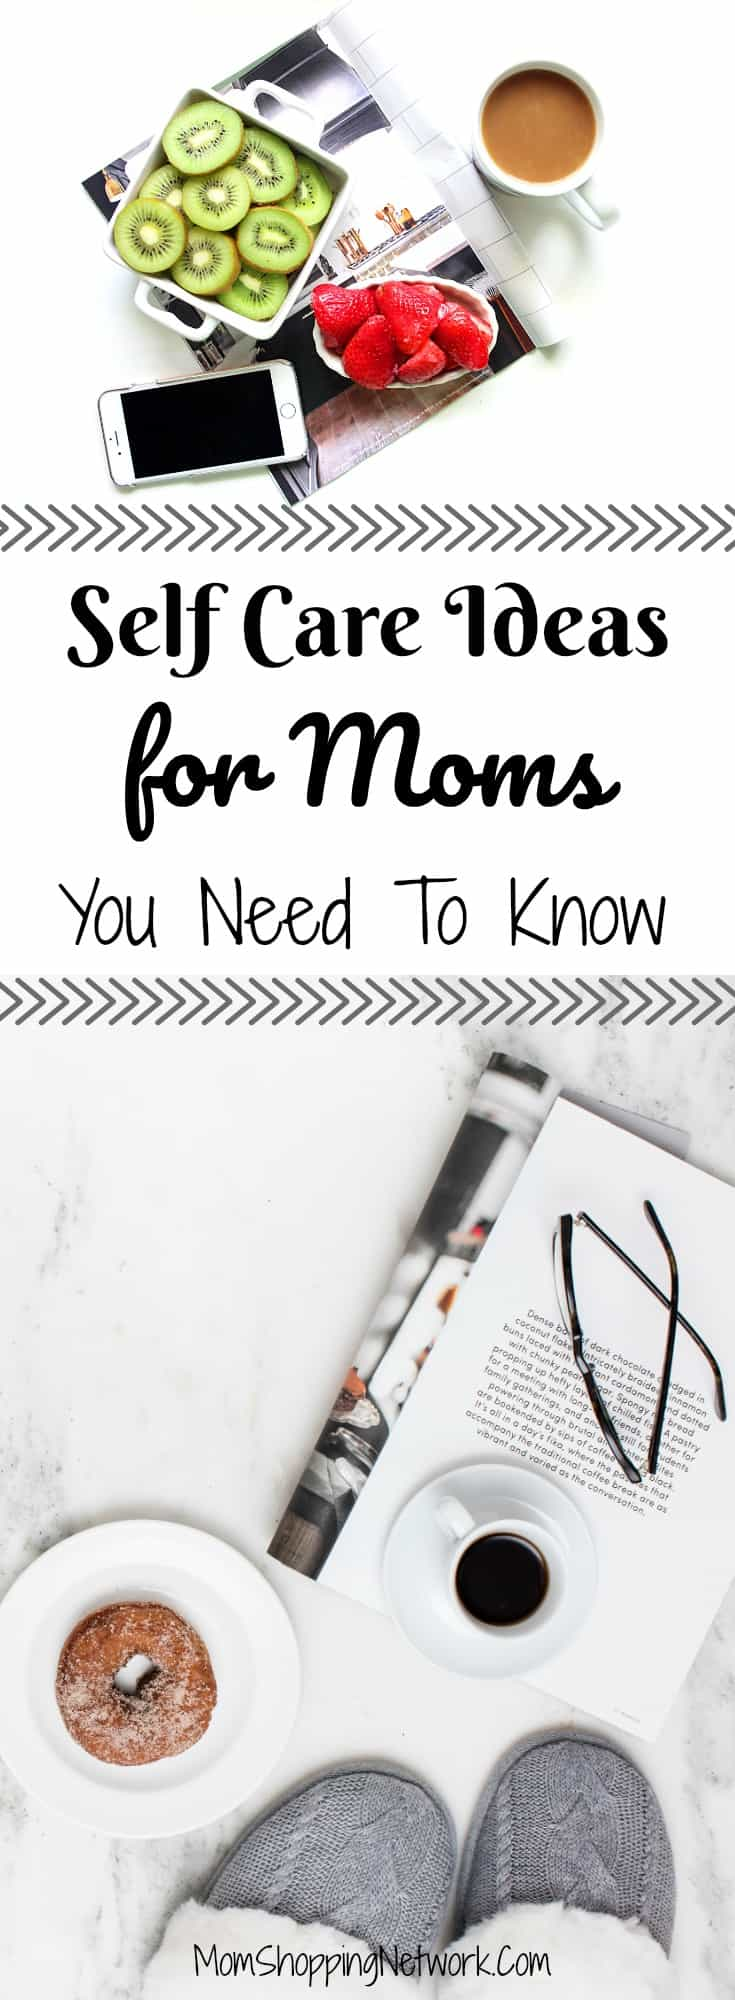 These are Self Care Ideas for Moms You Need to Know Right Now! Self Care Routine | Self Care Quotes | Self Care Ideas | Self Care Basket | Self Care Products | Self Care Tips | Self Care Journal | Self Care For Women | Self Care Activities | Self Care Beauty |Self Care For Moms | Self Care Worksheet | Self Care Challenge | Self Care Depression